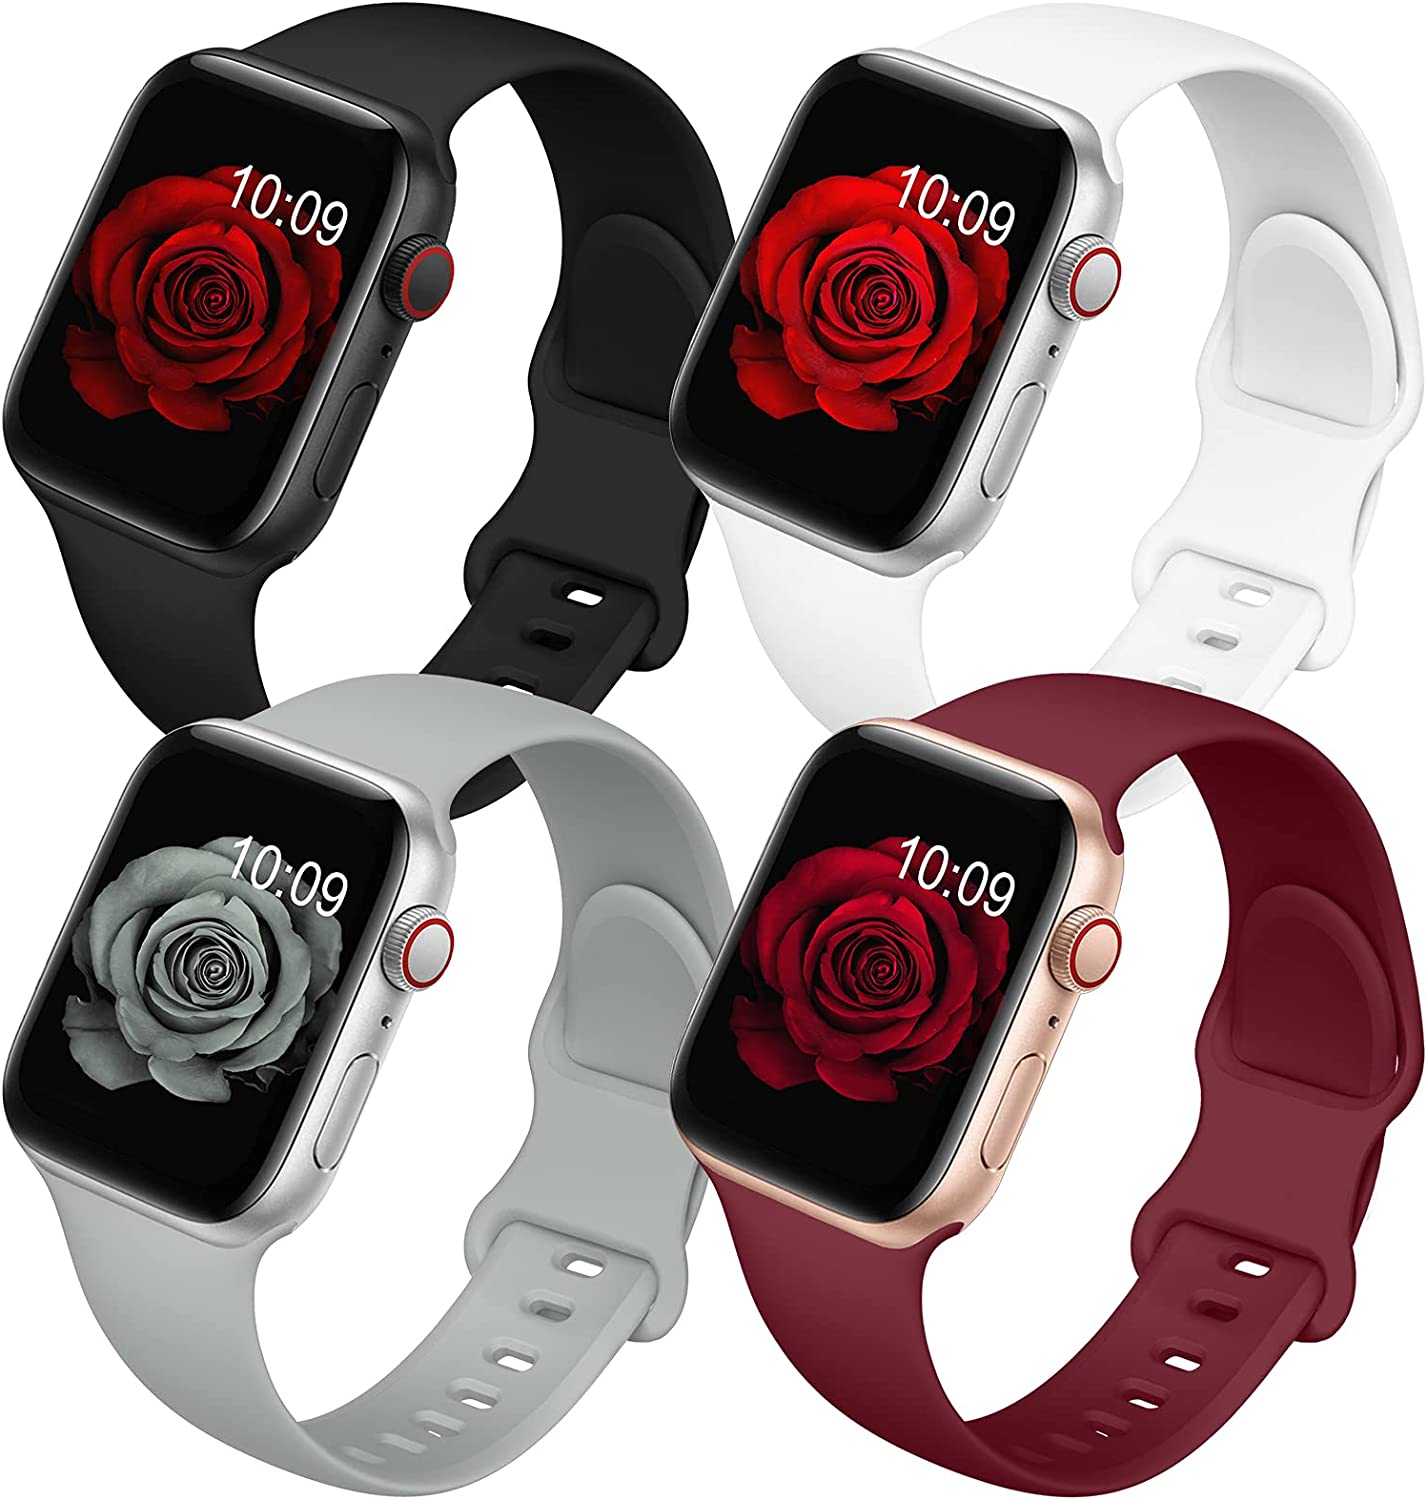 4 Pack Bands Compatible with Apple Watch Band 38mm 40mm 42mm 44mm for Women Men, Soft Silicone Sport Replacement Watch Strap for iwatch Series SE/ 6/5/4/3/2/1 Black/White/Wine Red/Gray